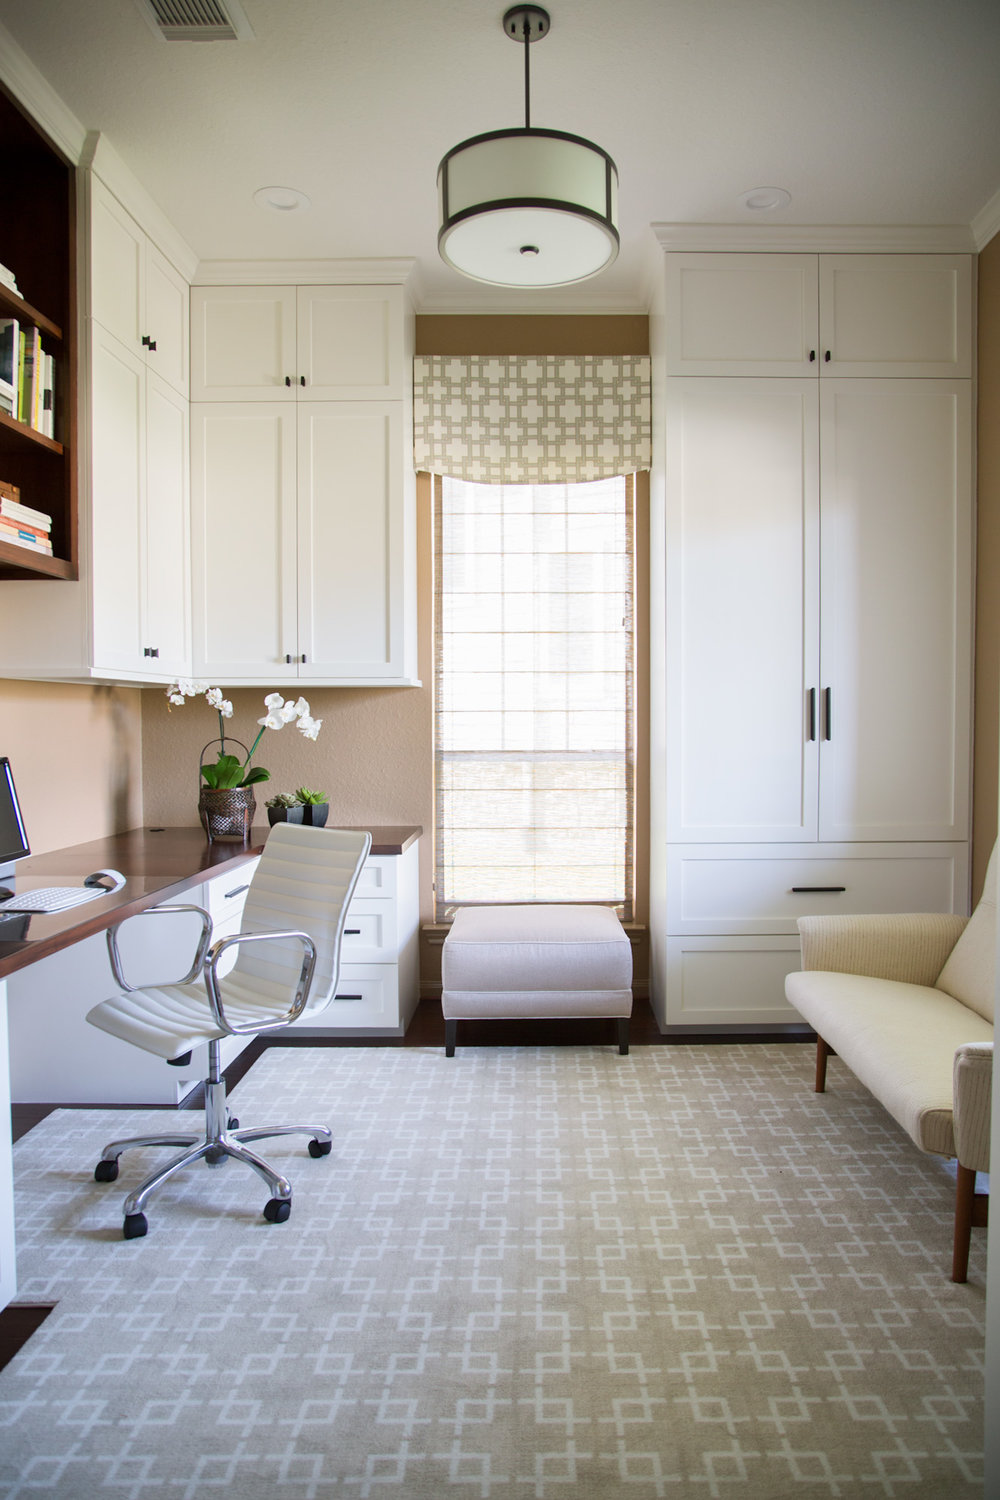 AFTER - Window valance hung above window, covering painted wall and only very top of window, making it seem taller. Carla Aston, Designer | Tori Aston, Photographer